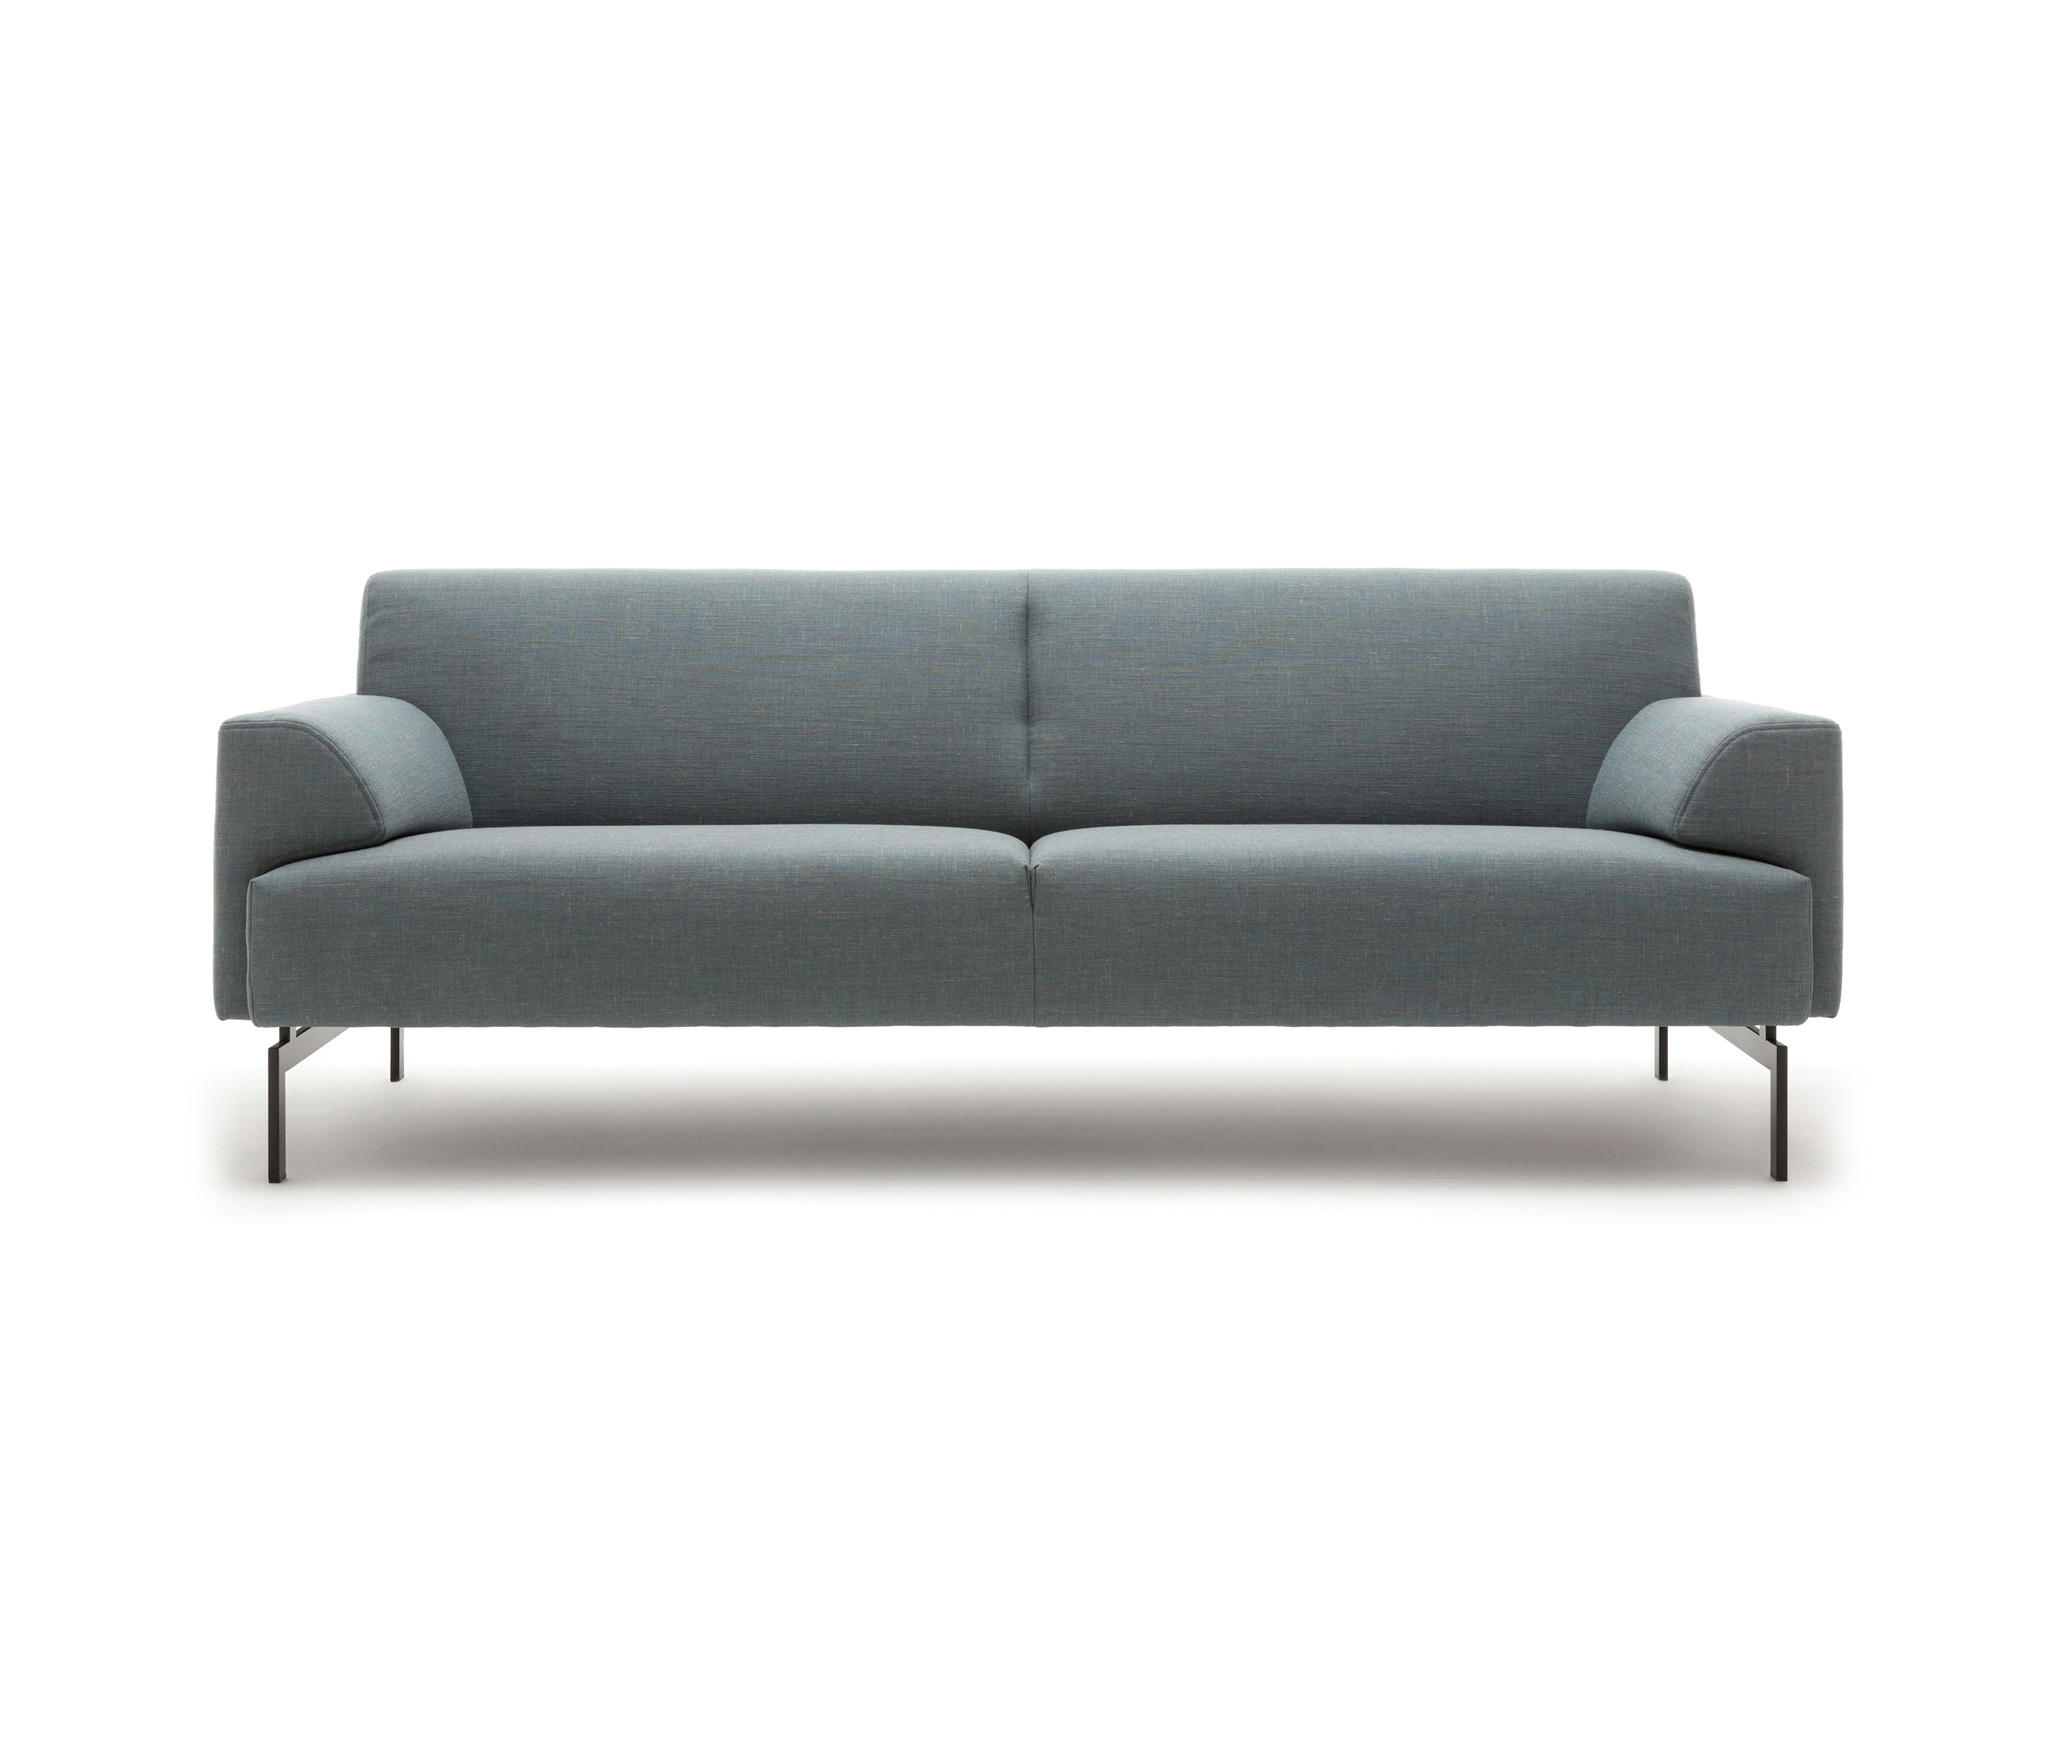 Rolf benz 310 loungesofas von rolf benz architonic for Rolf benz katalog